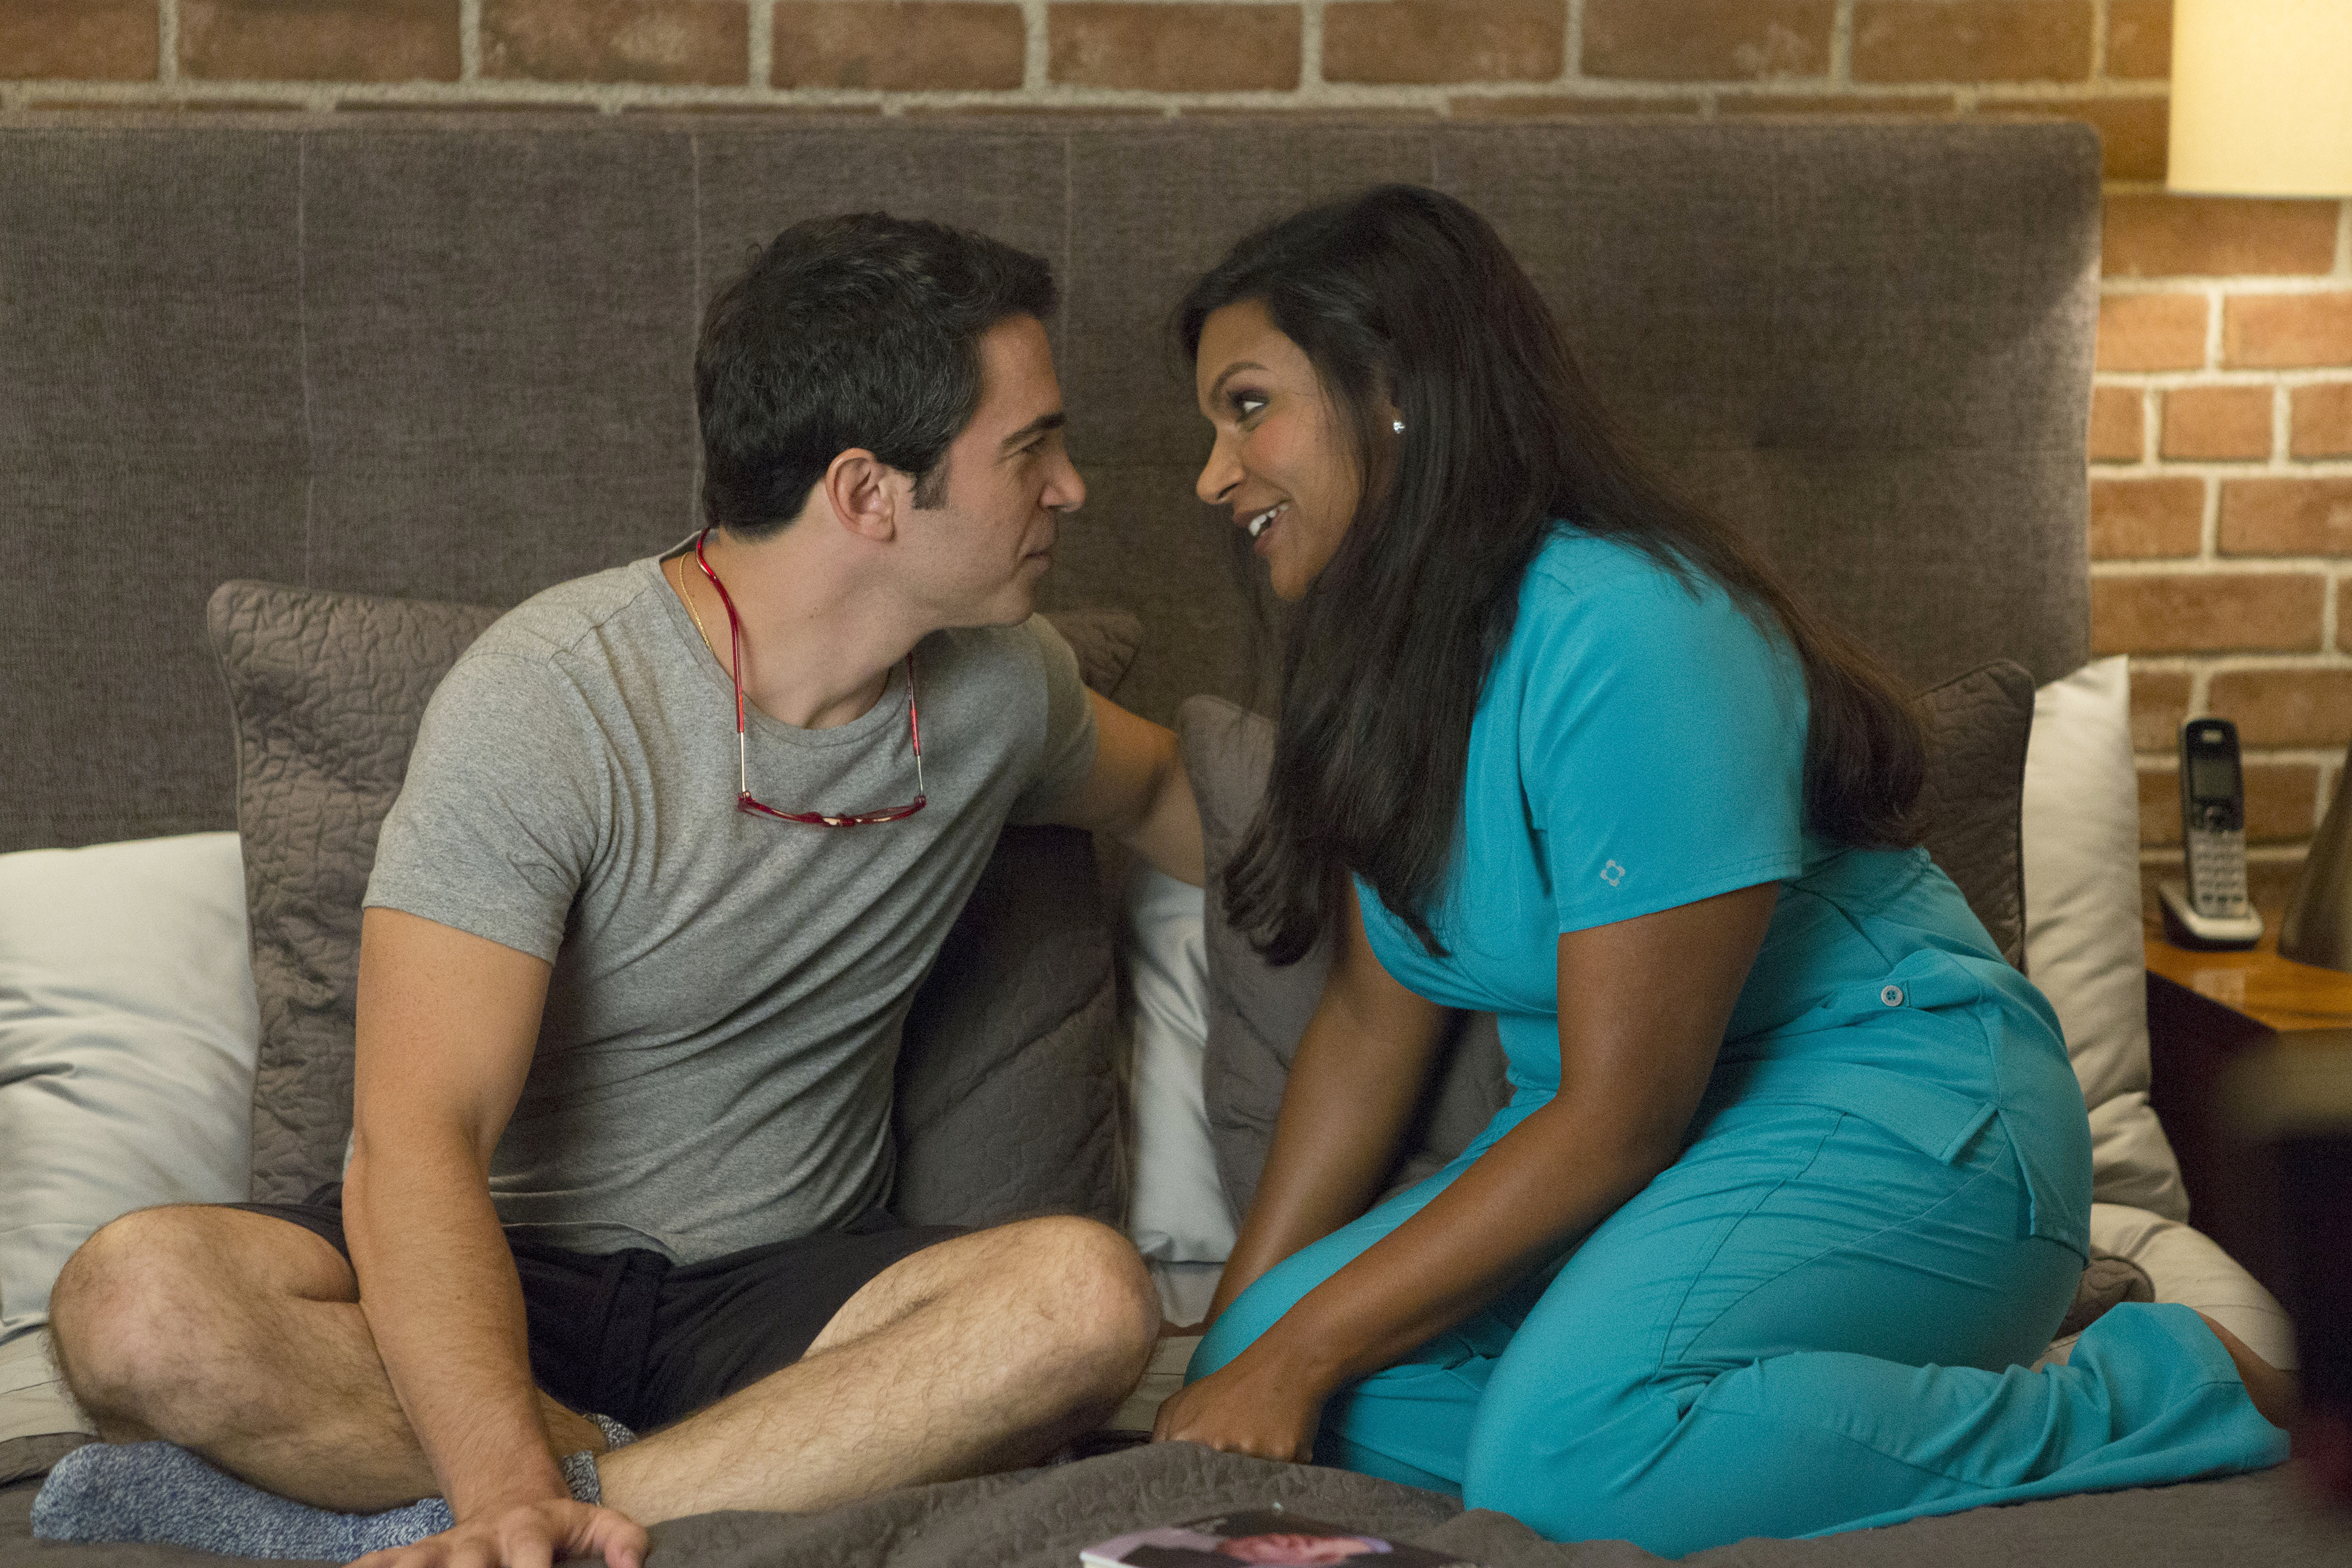 14. Mindy and Danny on 'The Mindy Project'